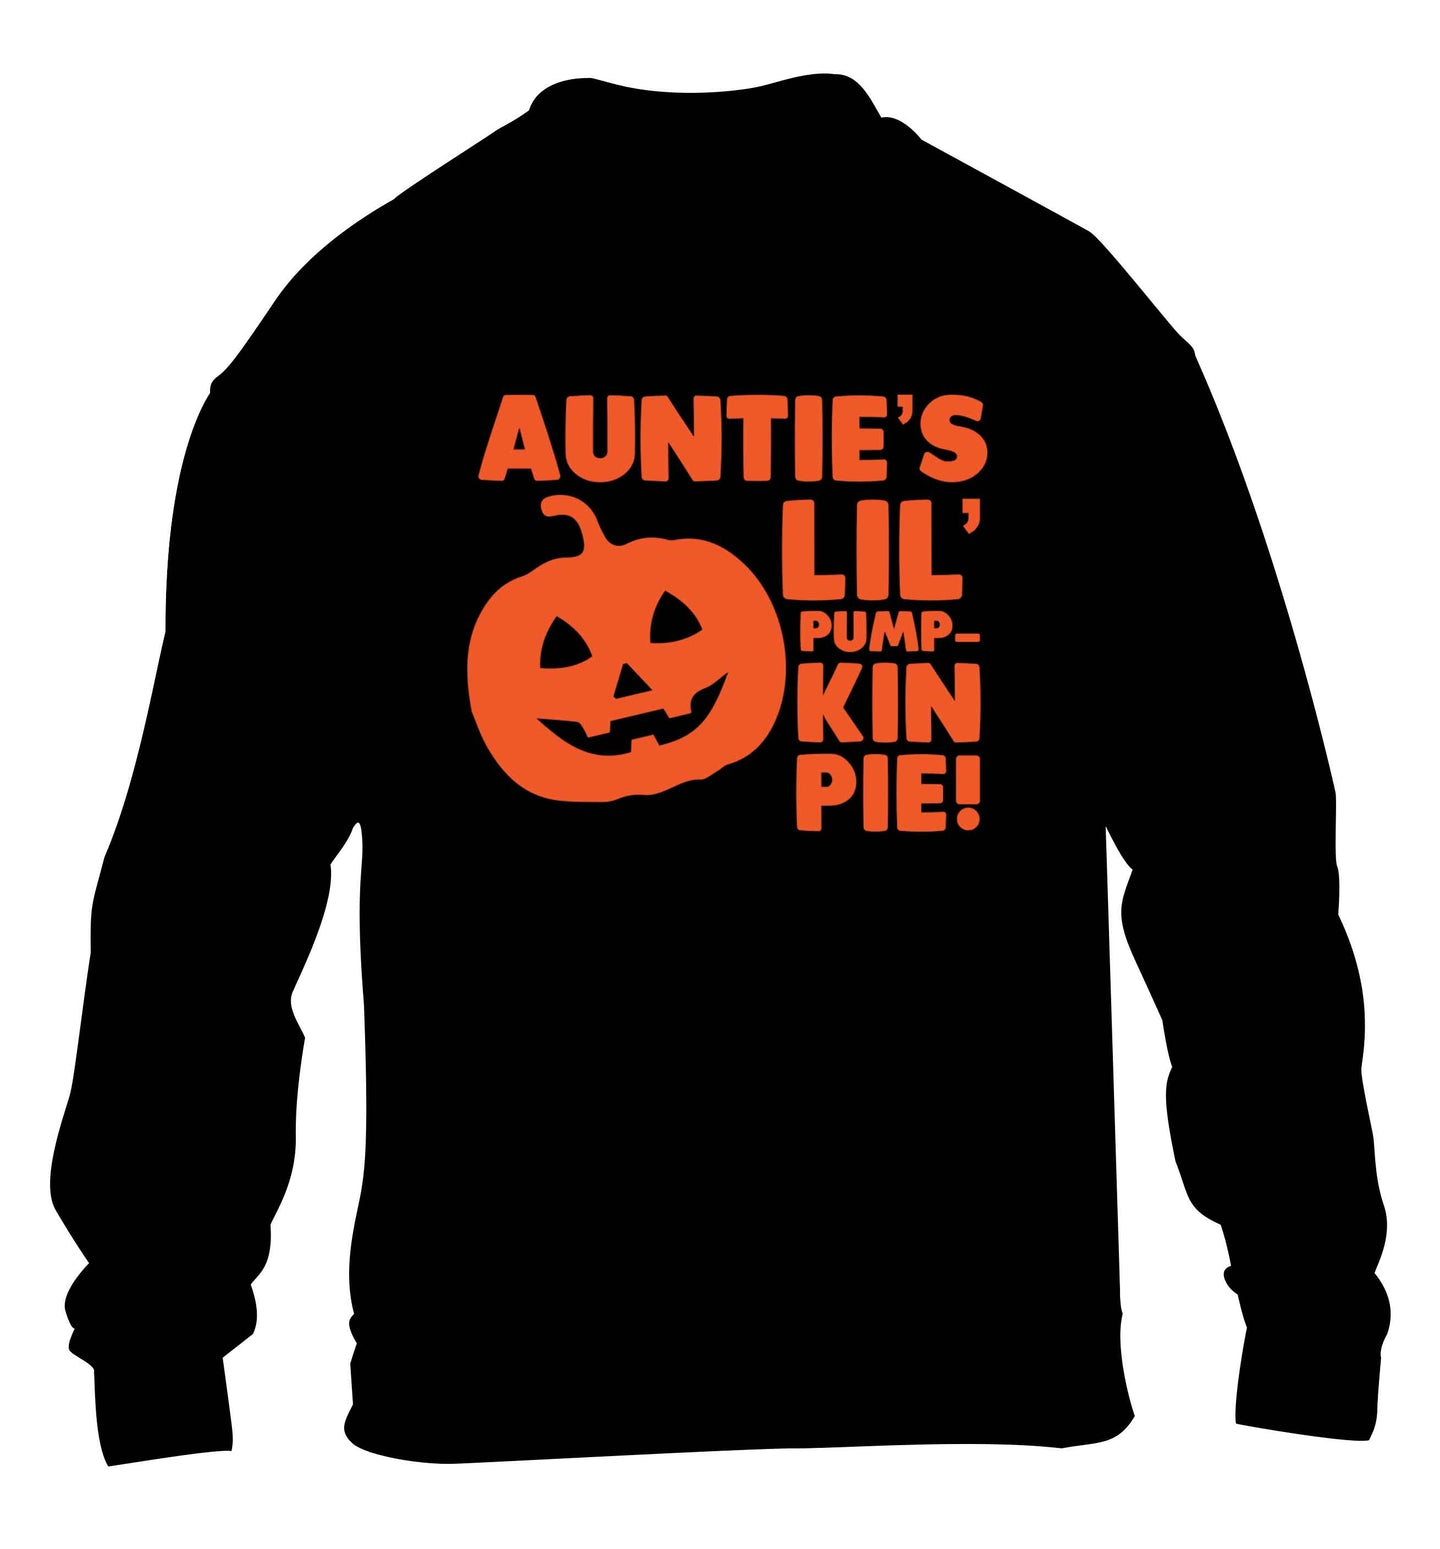 Auntie's lil' pumpkin pie children's black sweater 12-13 Years